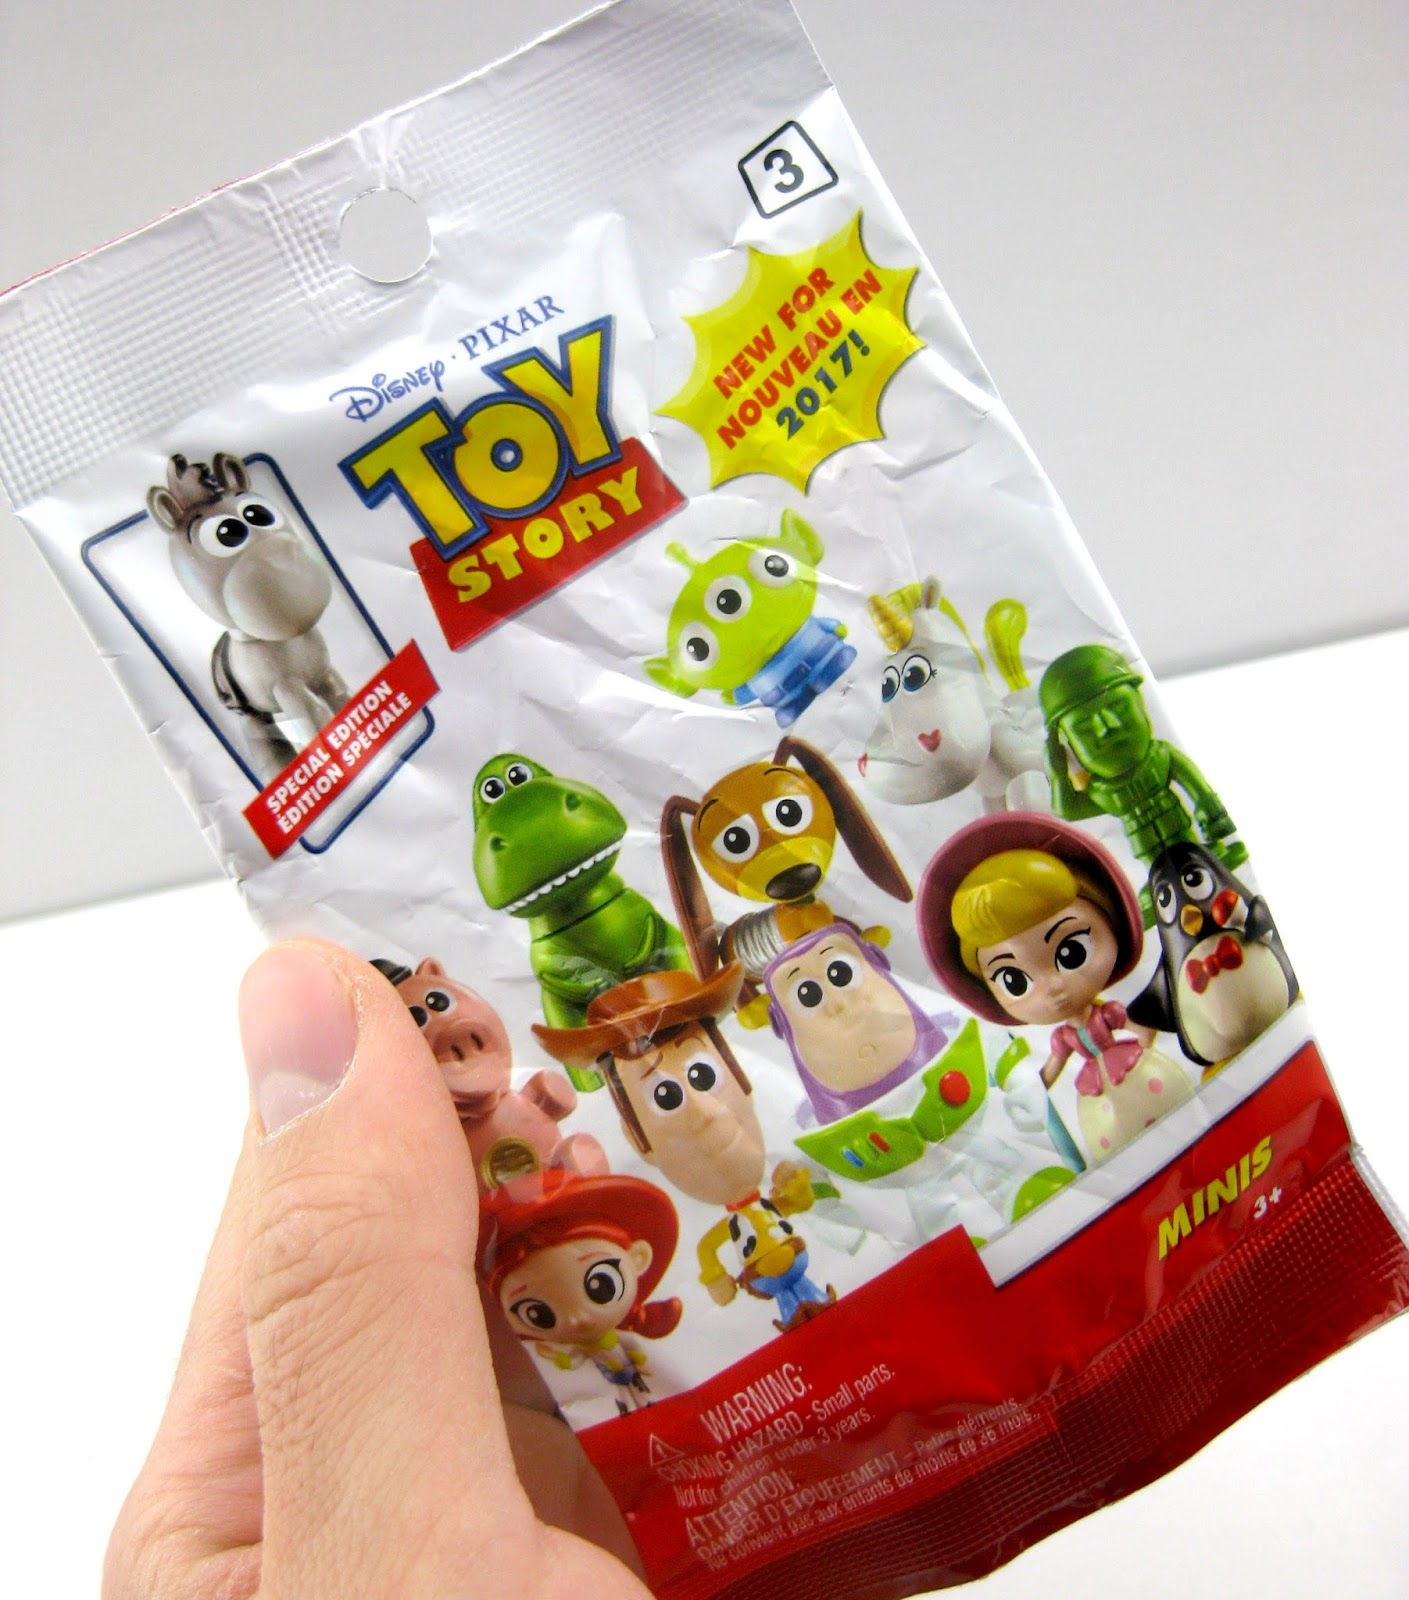 toy story minis blind bags series 3